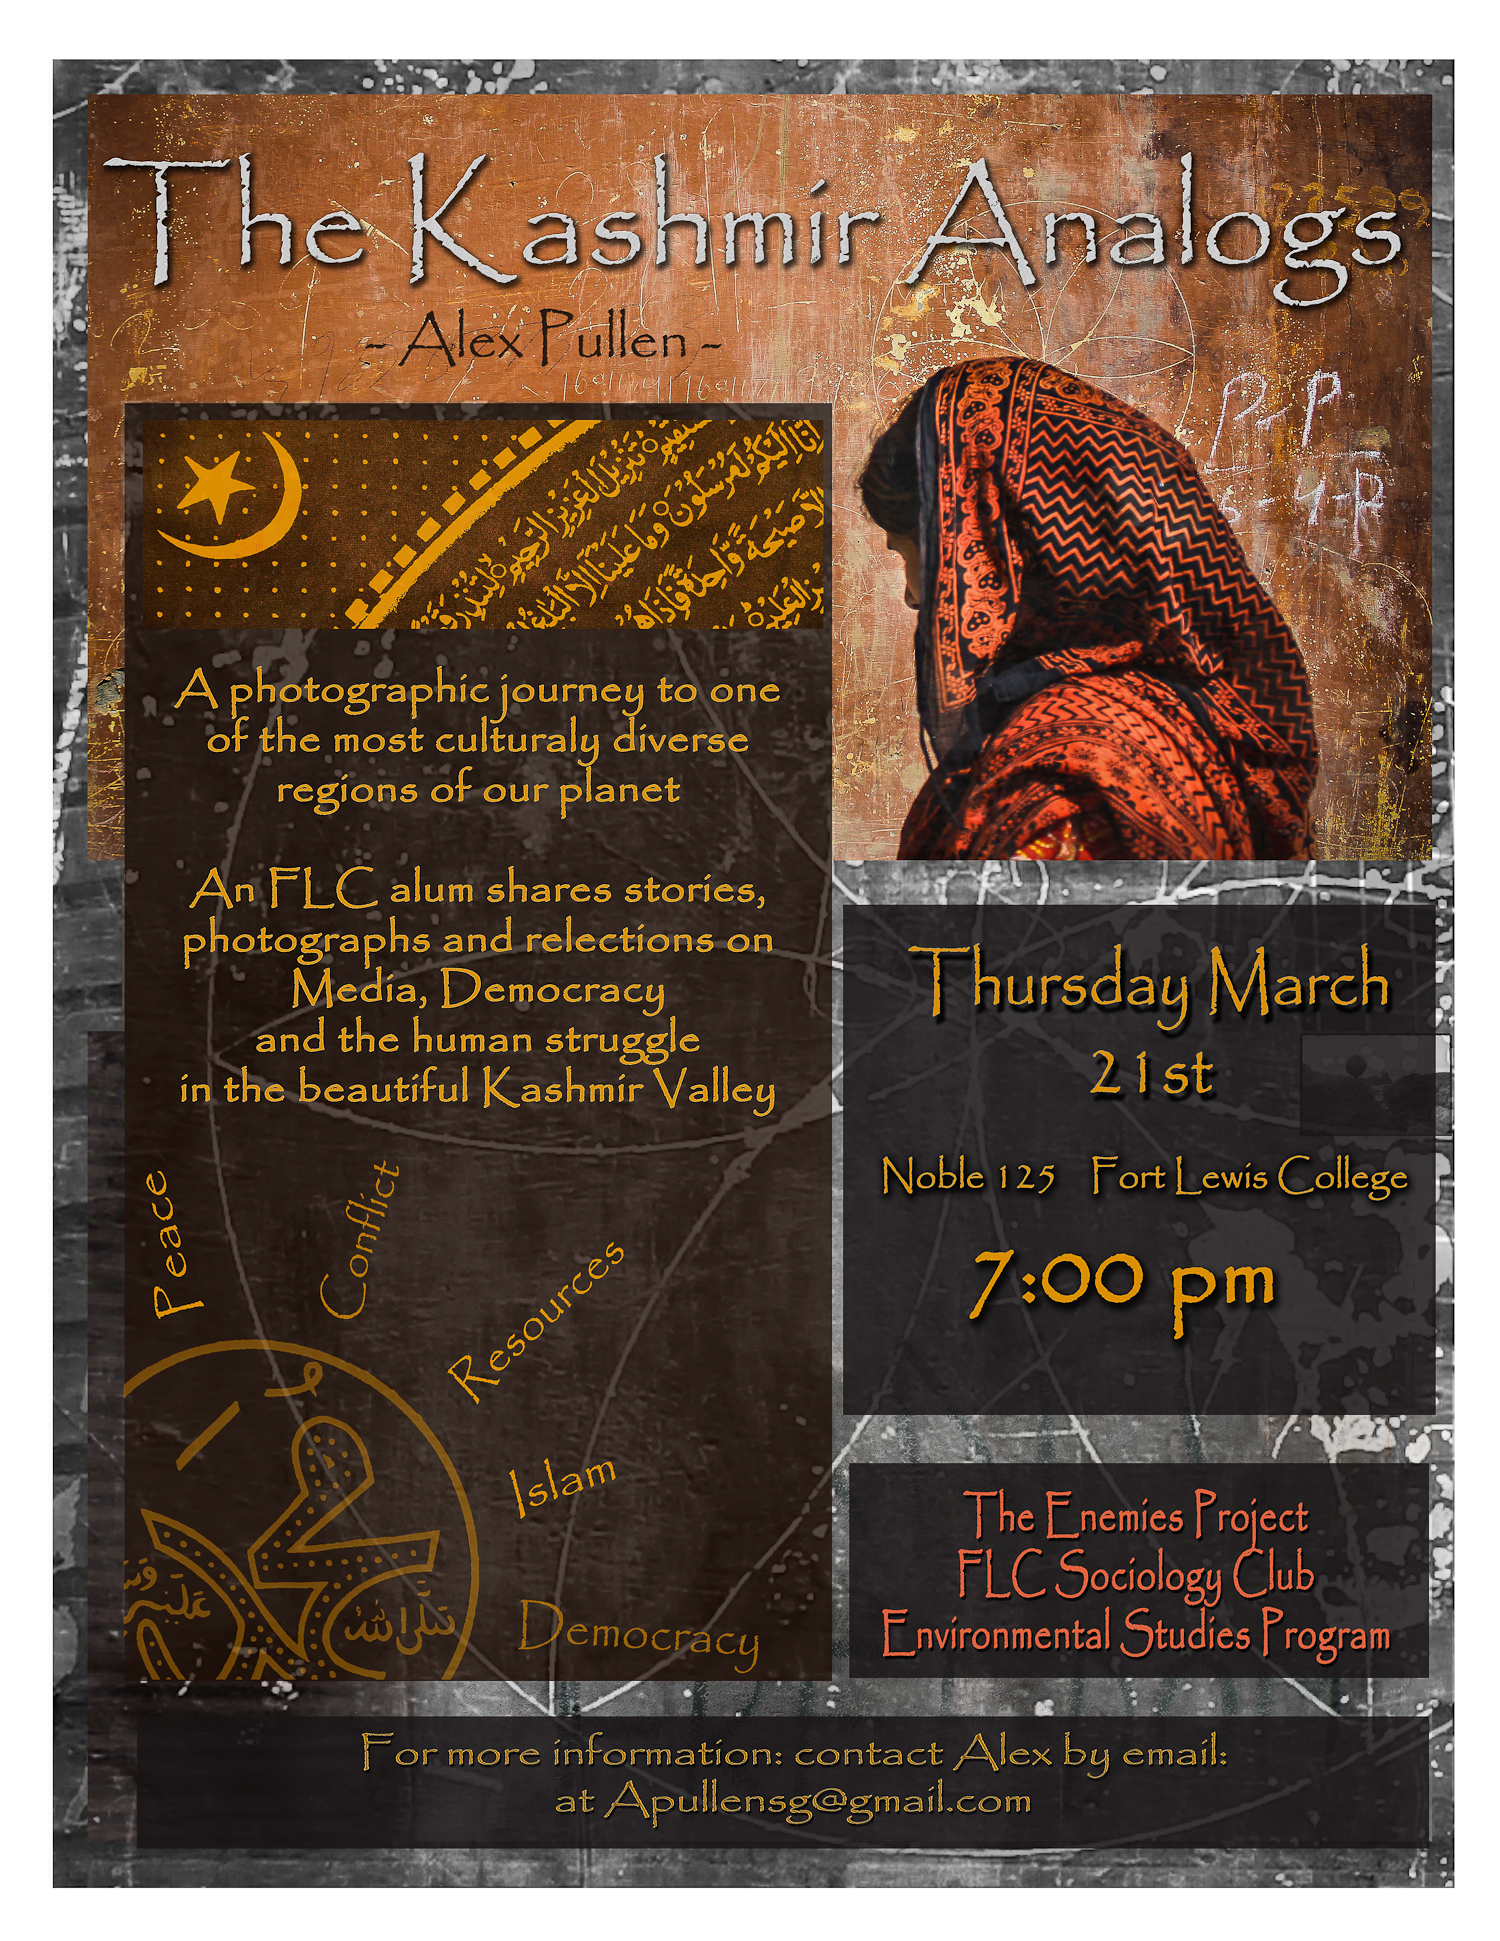 Flier I created about a talk on Kashmir I'm giving at Fort Lewis College this coming spring.